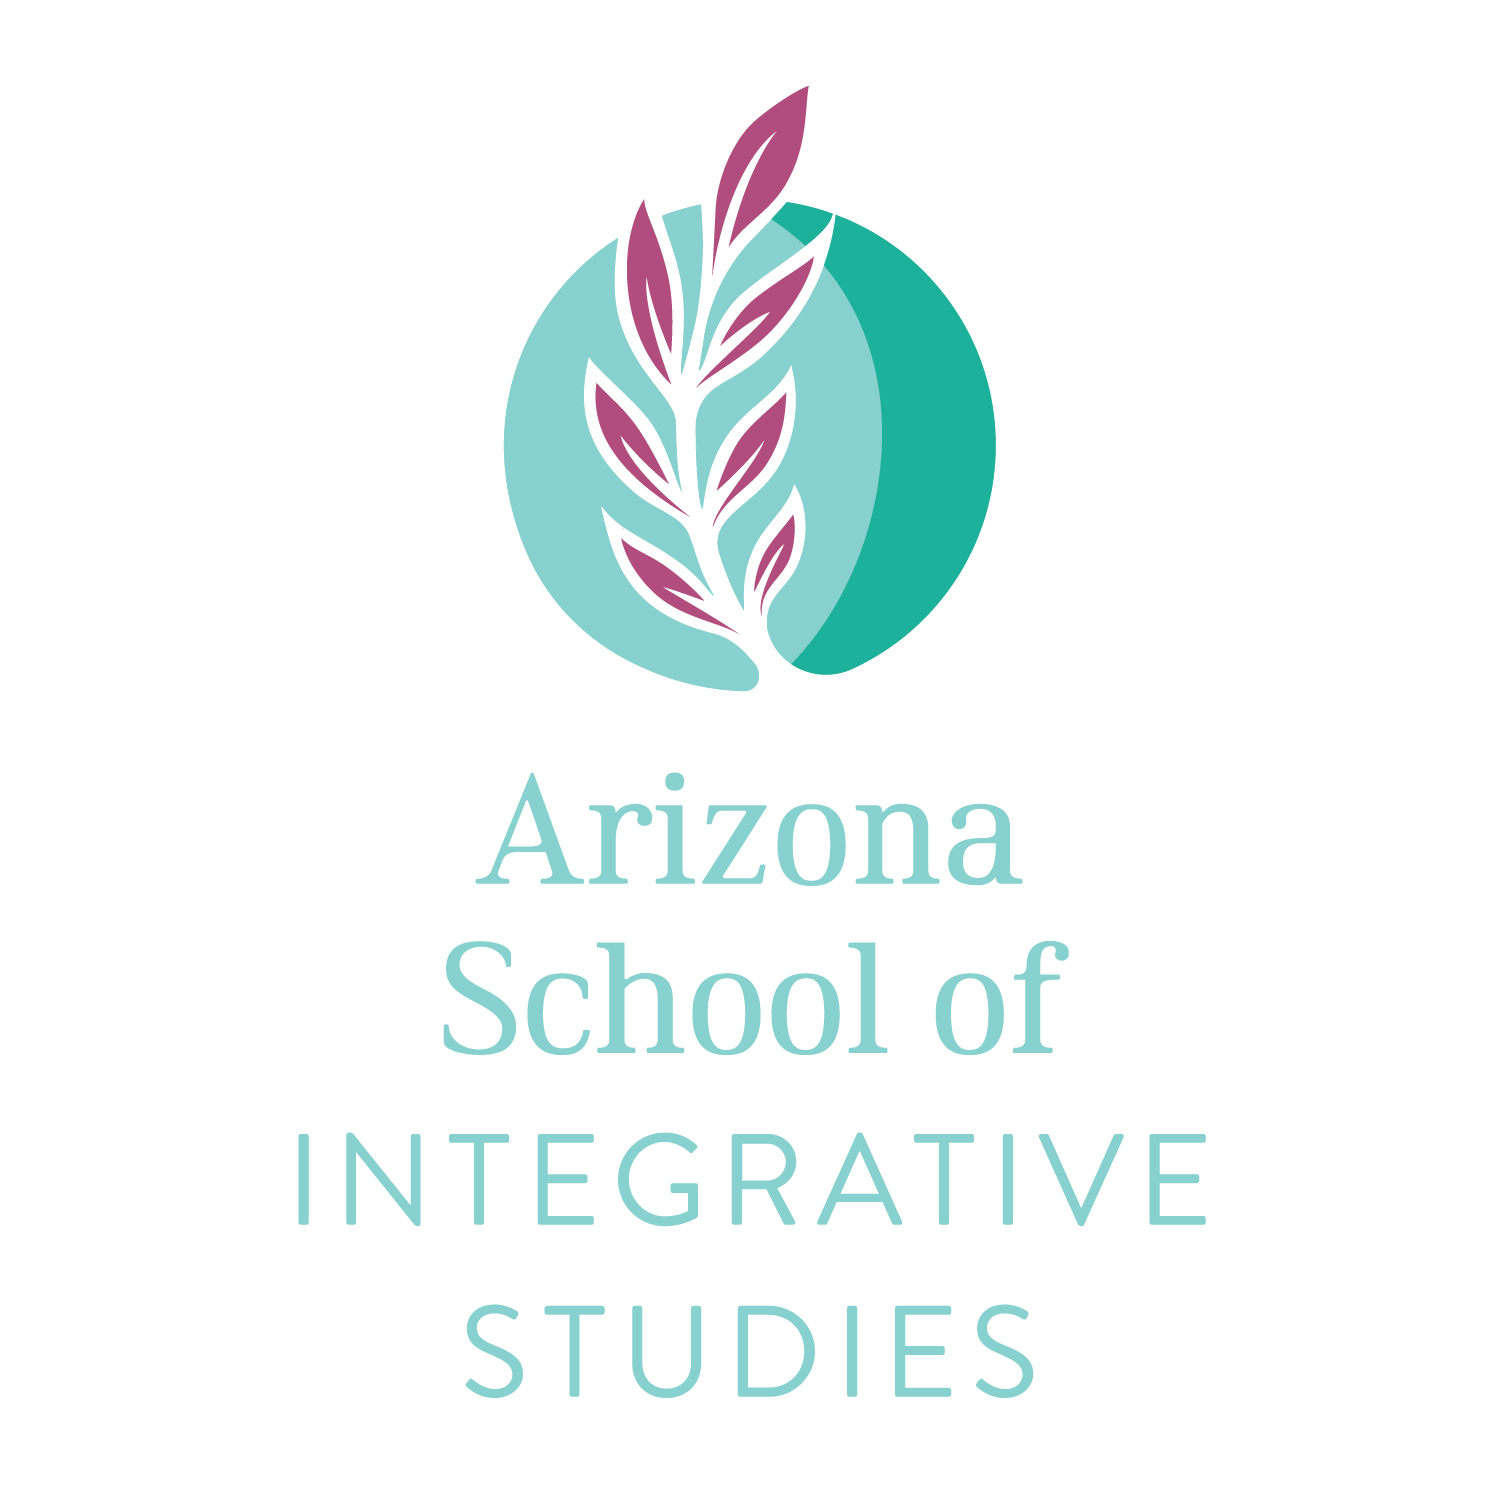 Arizona School of Integrated Studies